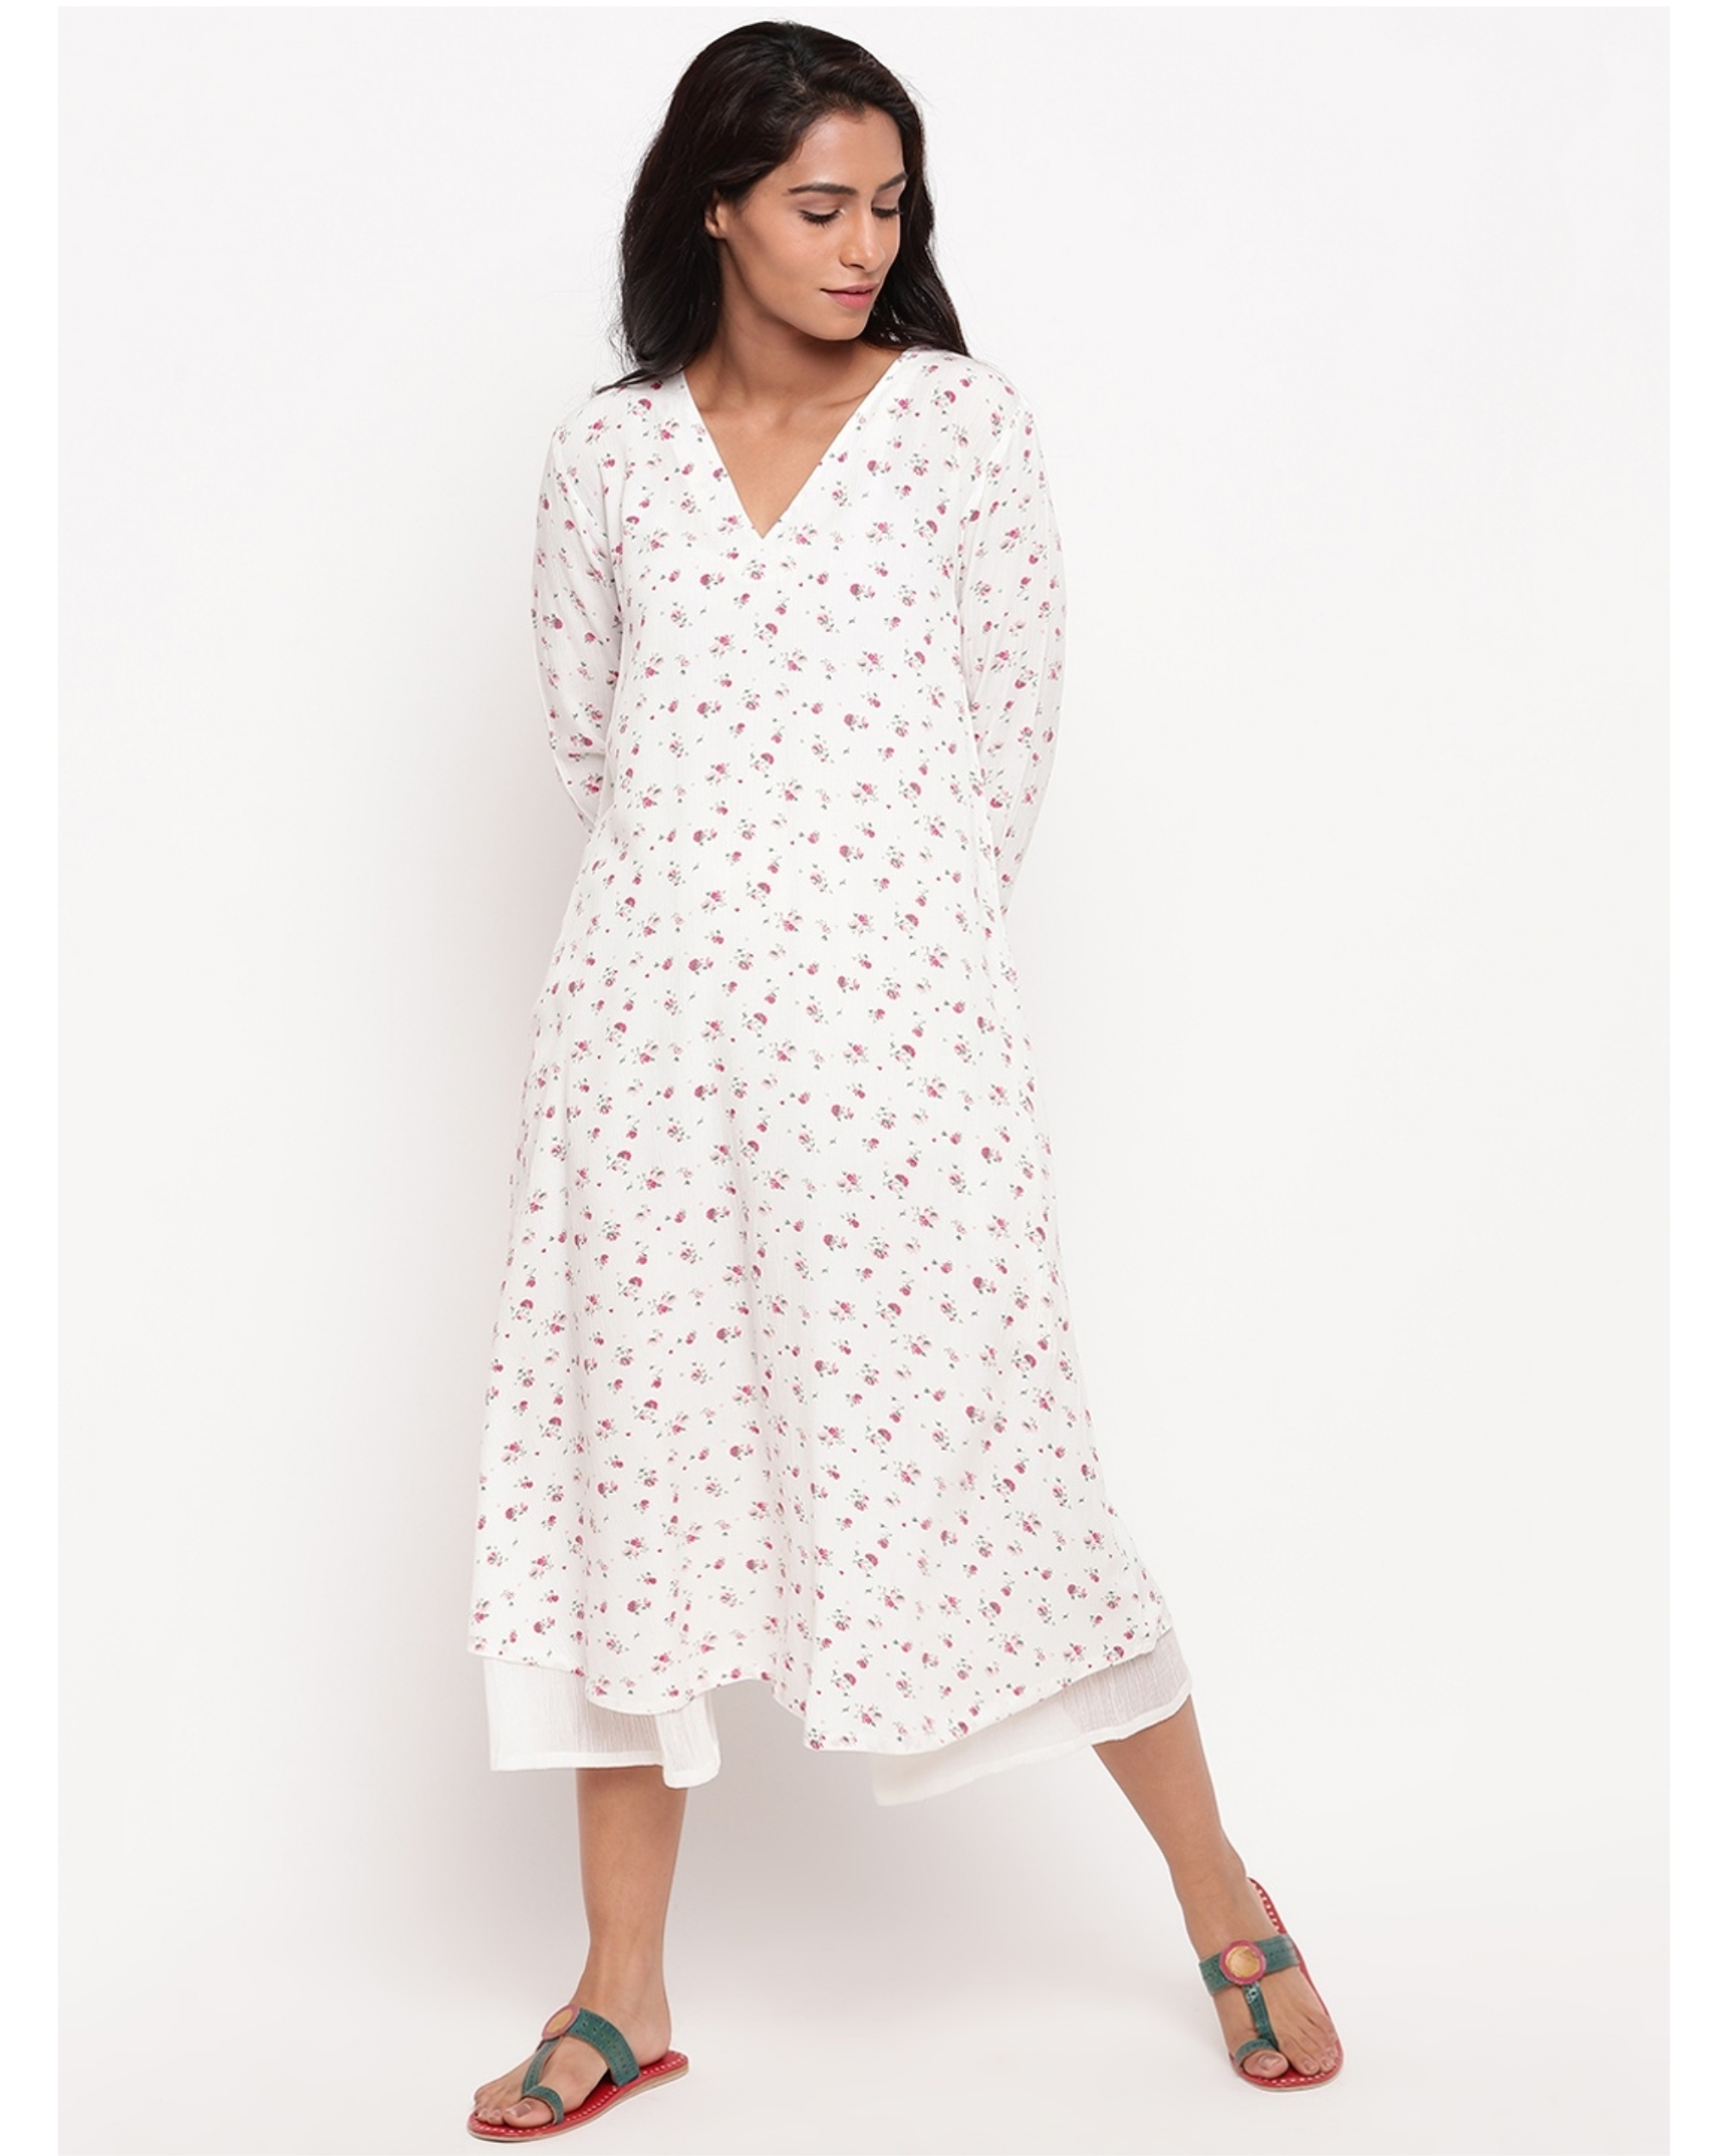 White and pink floral crinkled kurta